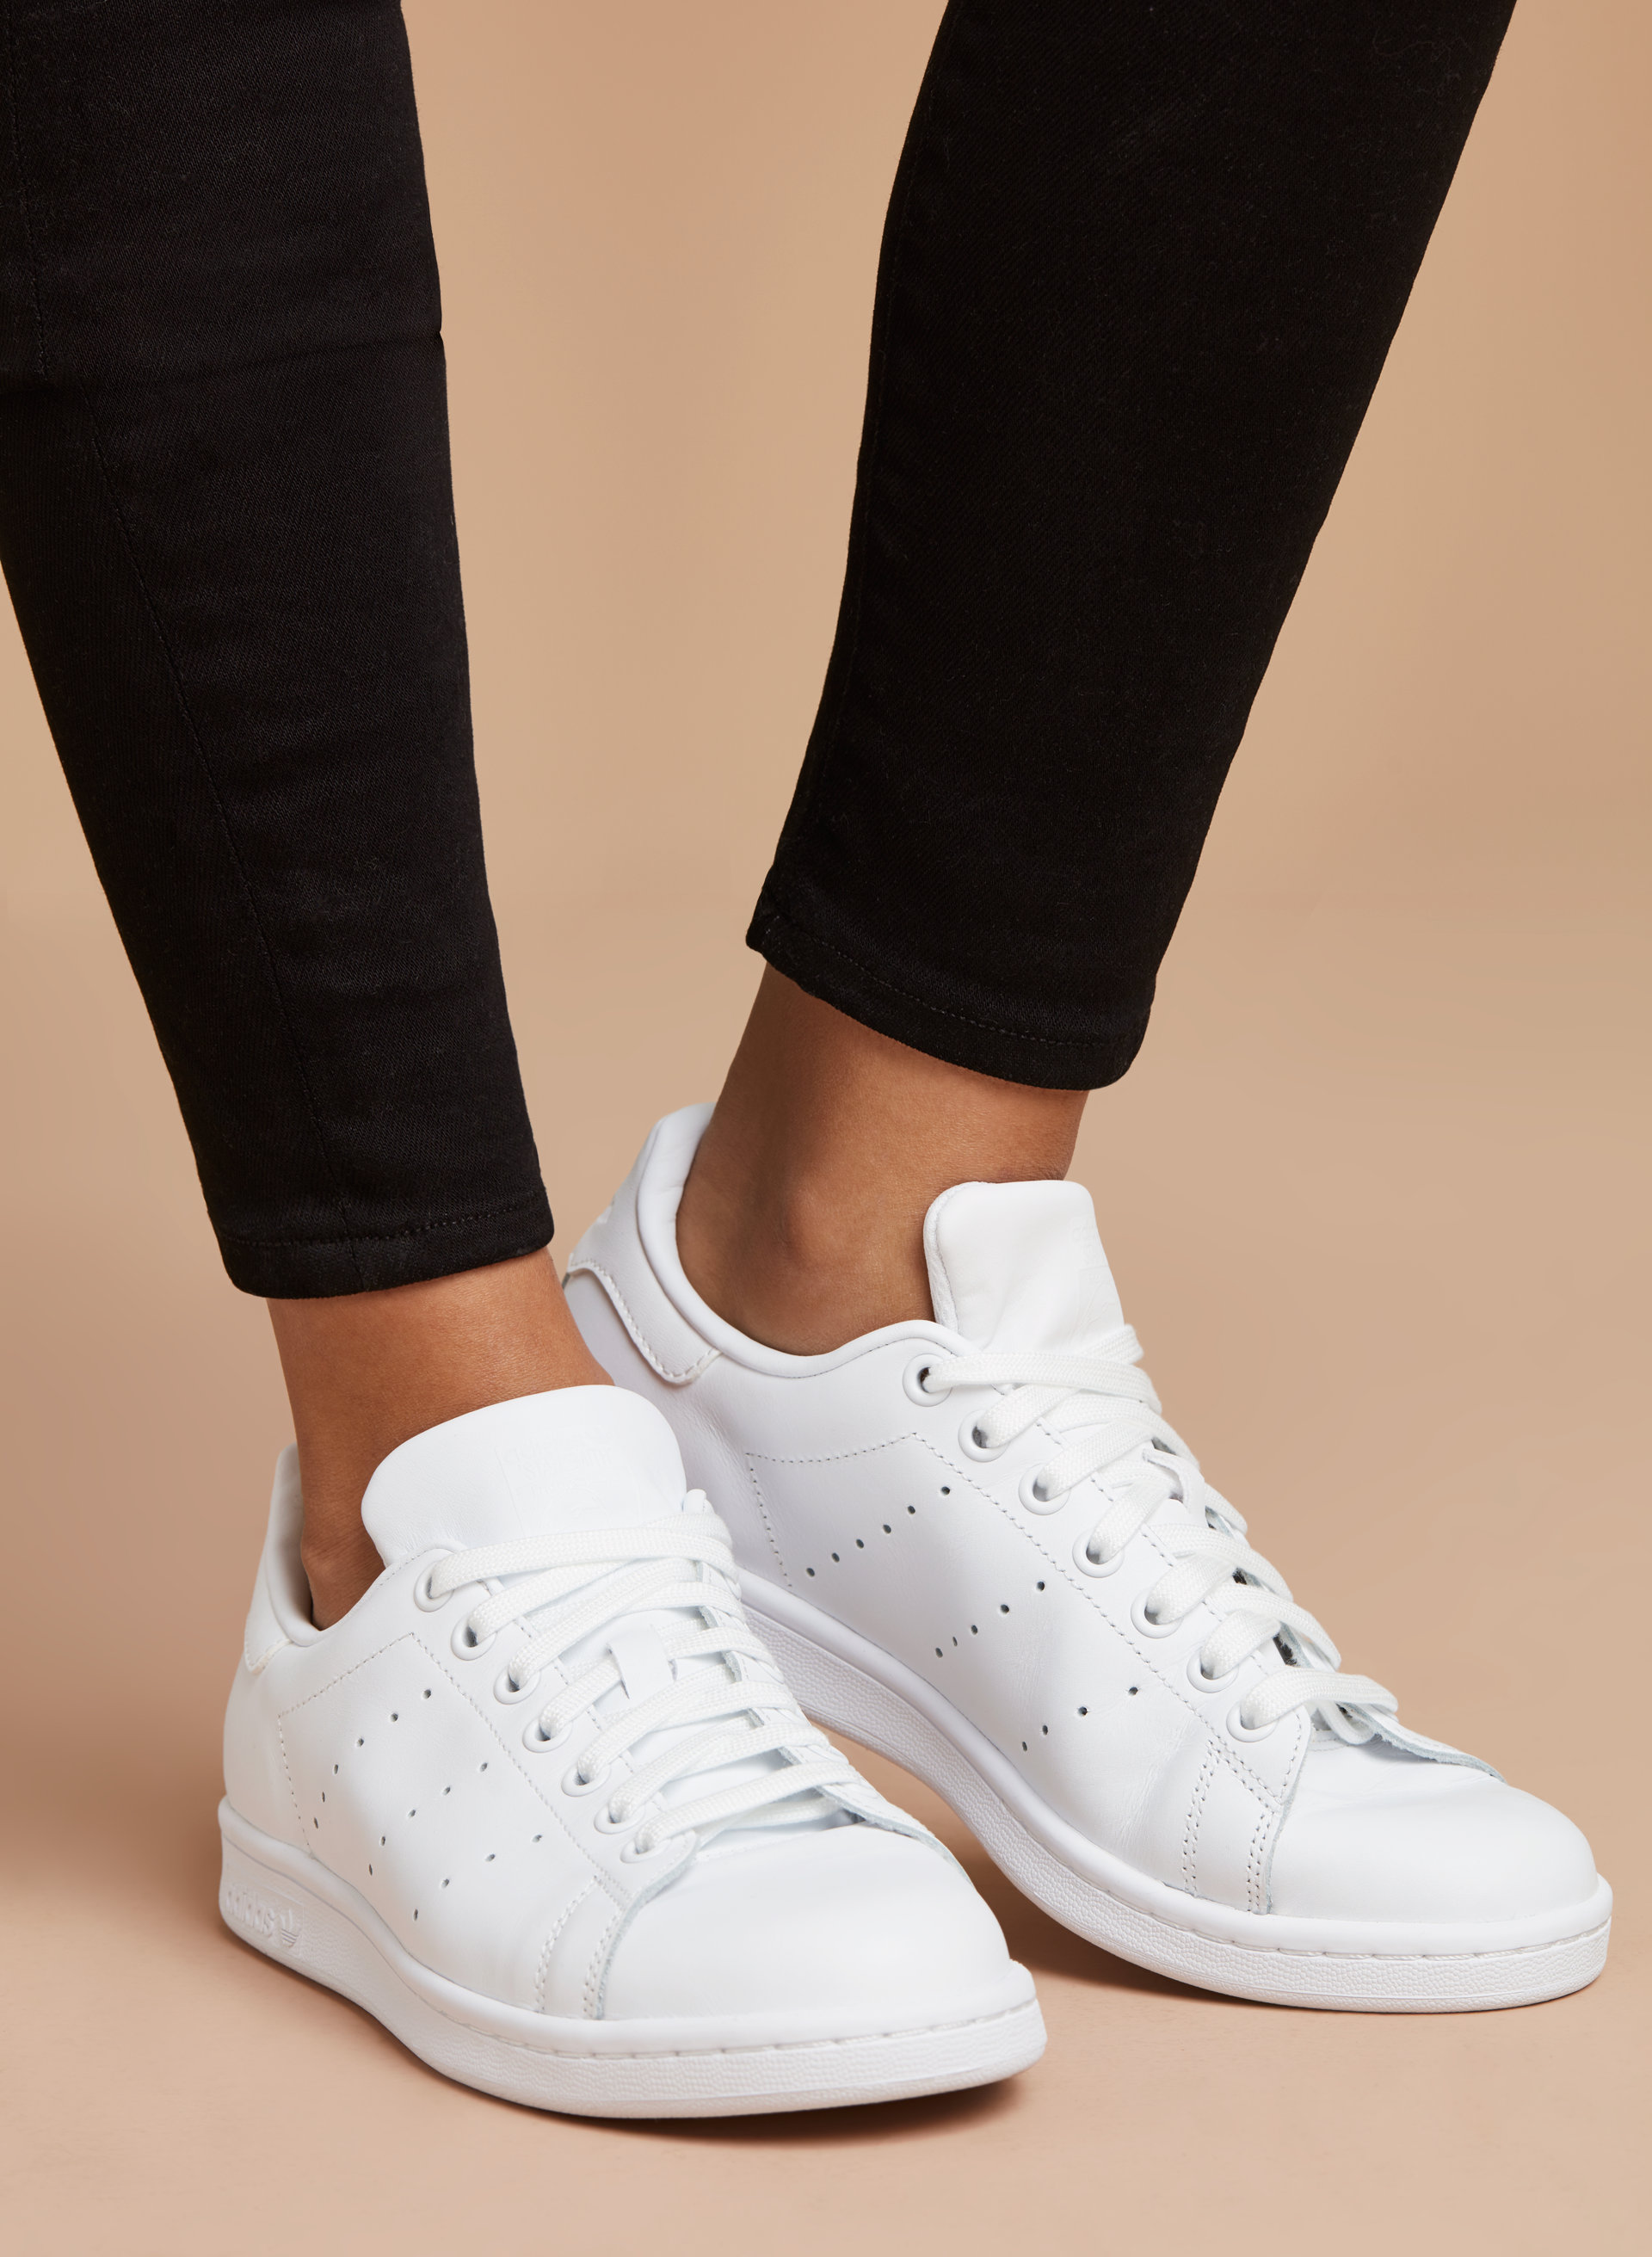 adidas STAN SMITH SNEAKER | Aritzia ...